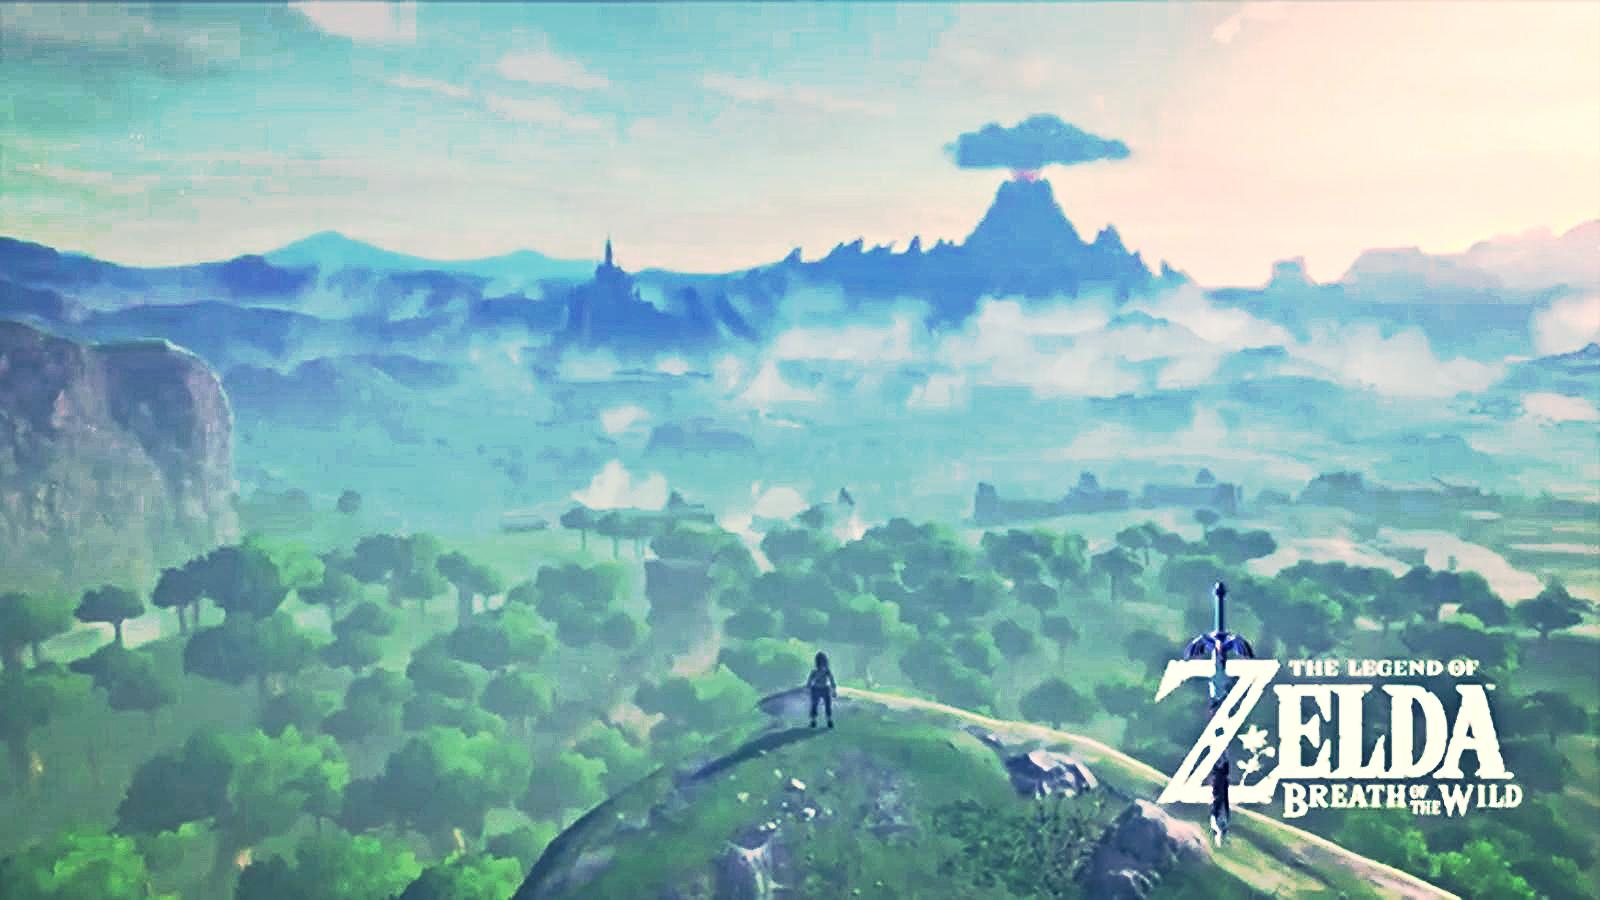 The Legend of Zelda Breath of the Wild HD Wallpapers and 1600x900